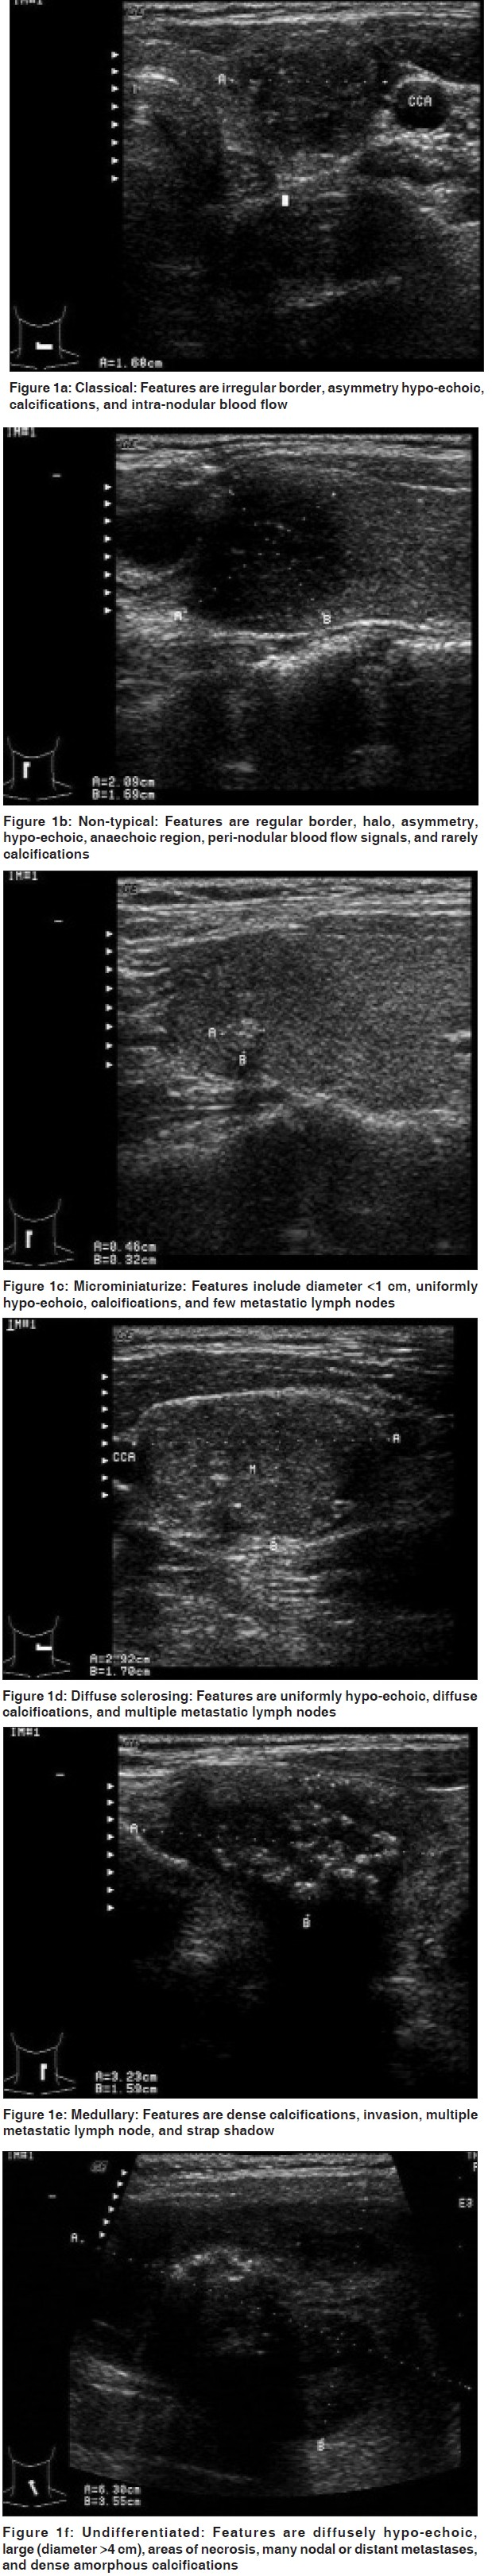 Evaluation Of Ultrasound Application In Diagnosis And Clinical